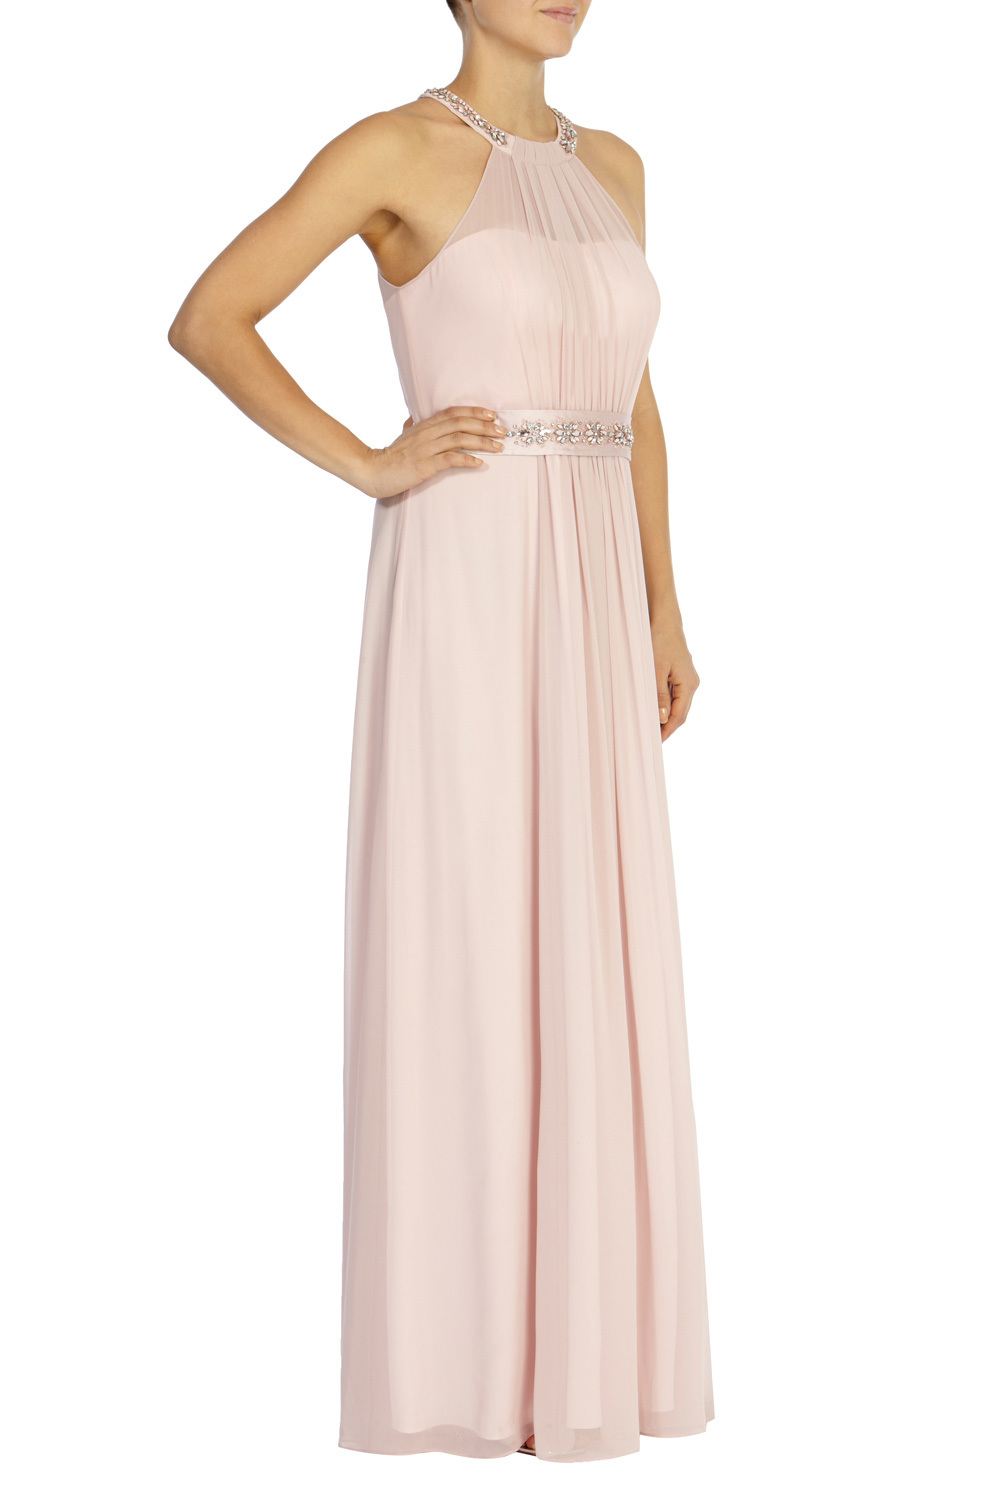 Juliette Maxi Dress Sl - style: ballgown; pattern: plain; sleeve style: sleeveless; predominant colour: blush; occasions: evening, occasion; length: floor length; fit: fitted at waist & bust; fibres: polyester/polyamide - 100%; sleeve length: sleeveless; texture group: sheer fabrics/chiffon/organza etc.; pattern type: fabric; embellishment: crystals/glass; season: s/s 2016; neckline: high halter neck; wardrobe: event; embellishment location: neck, waist